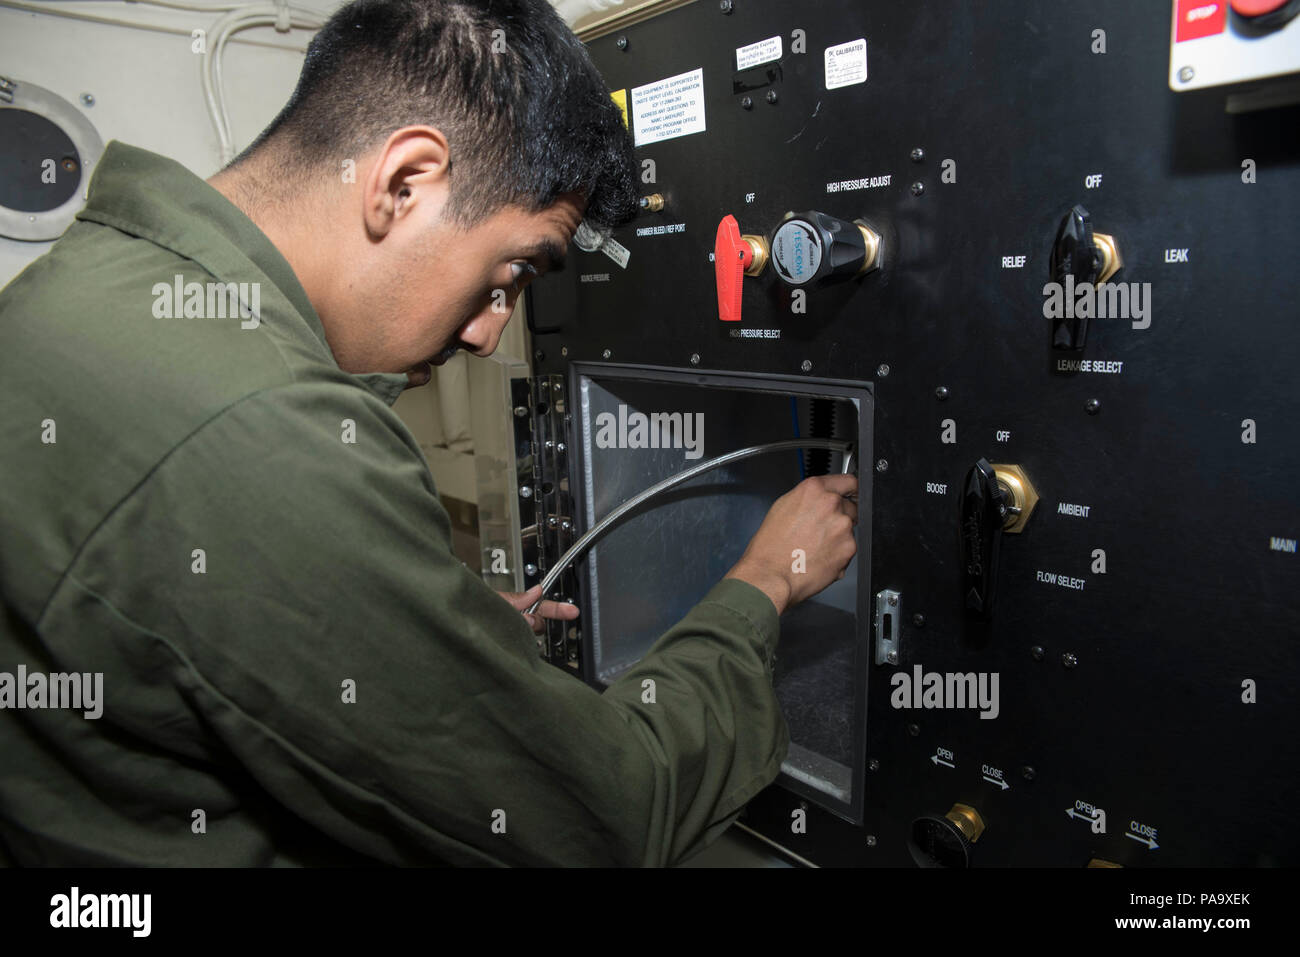 Portable Oxygen Stock Photos Images Alamy Los Angeles Electrical With Circuit Panels Neatness Counts 160308 N Ru971 015 East Sea March 8 2016